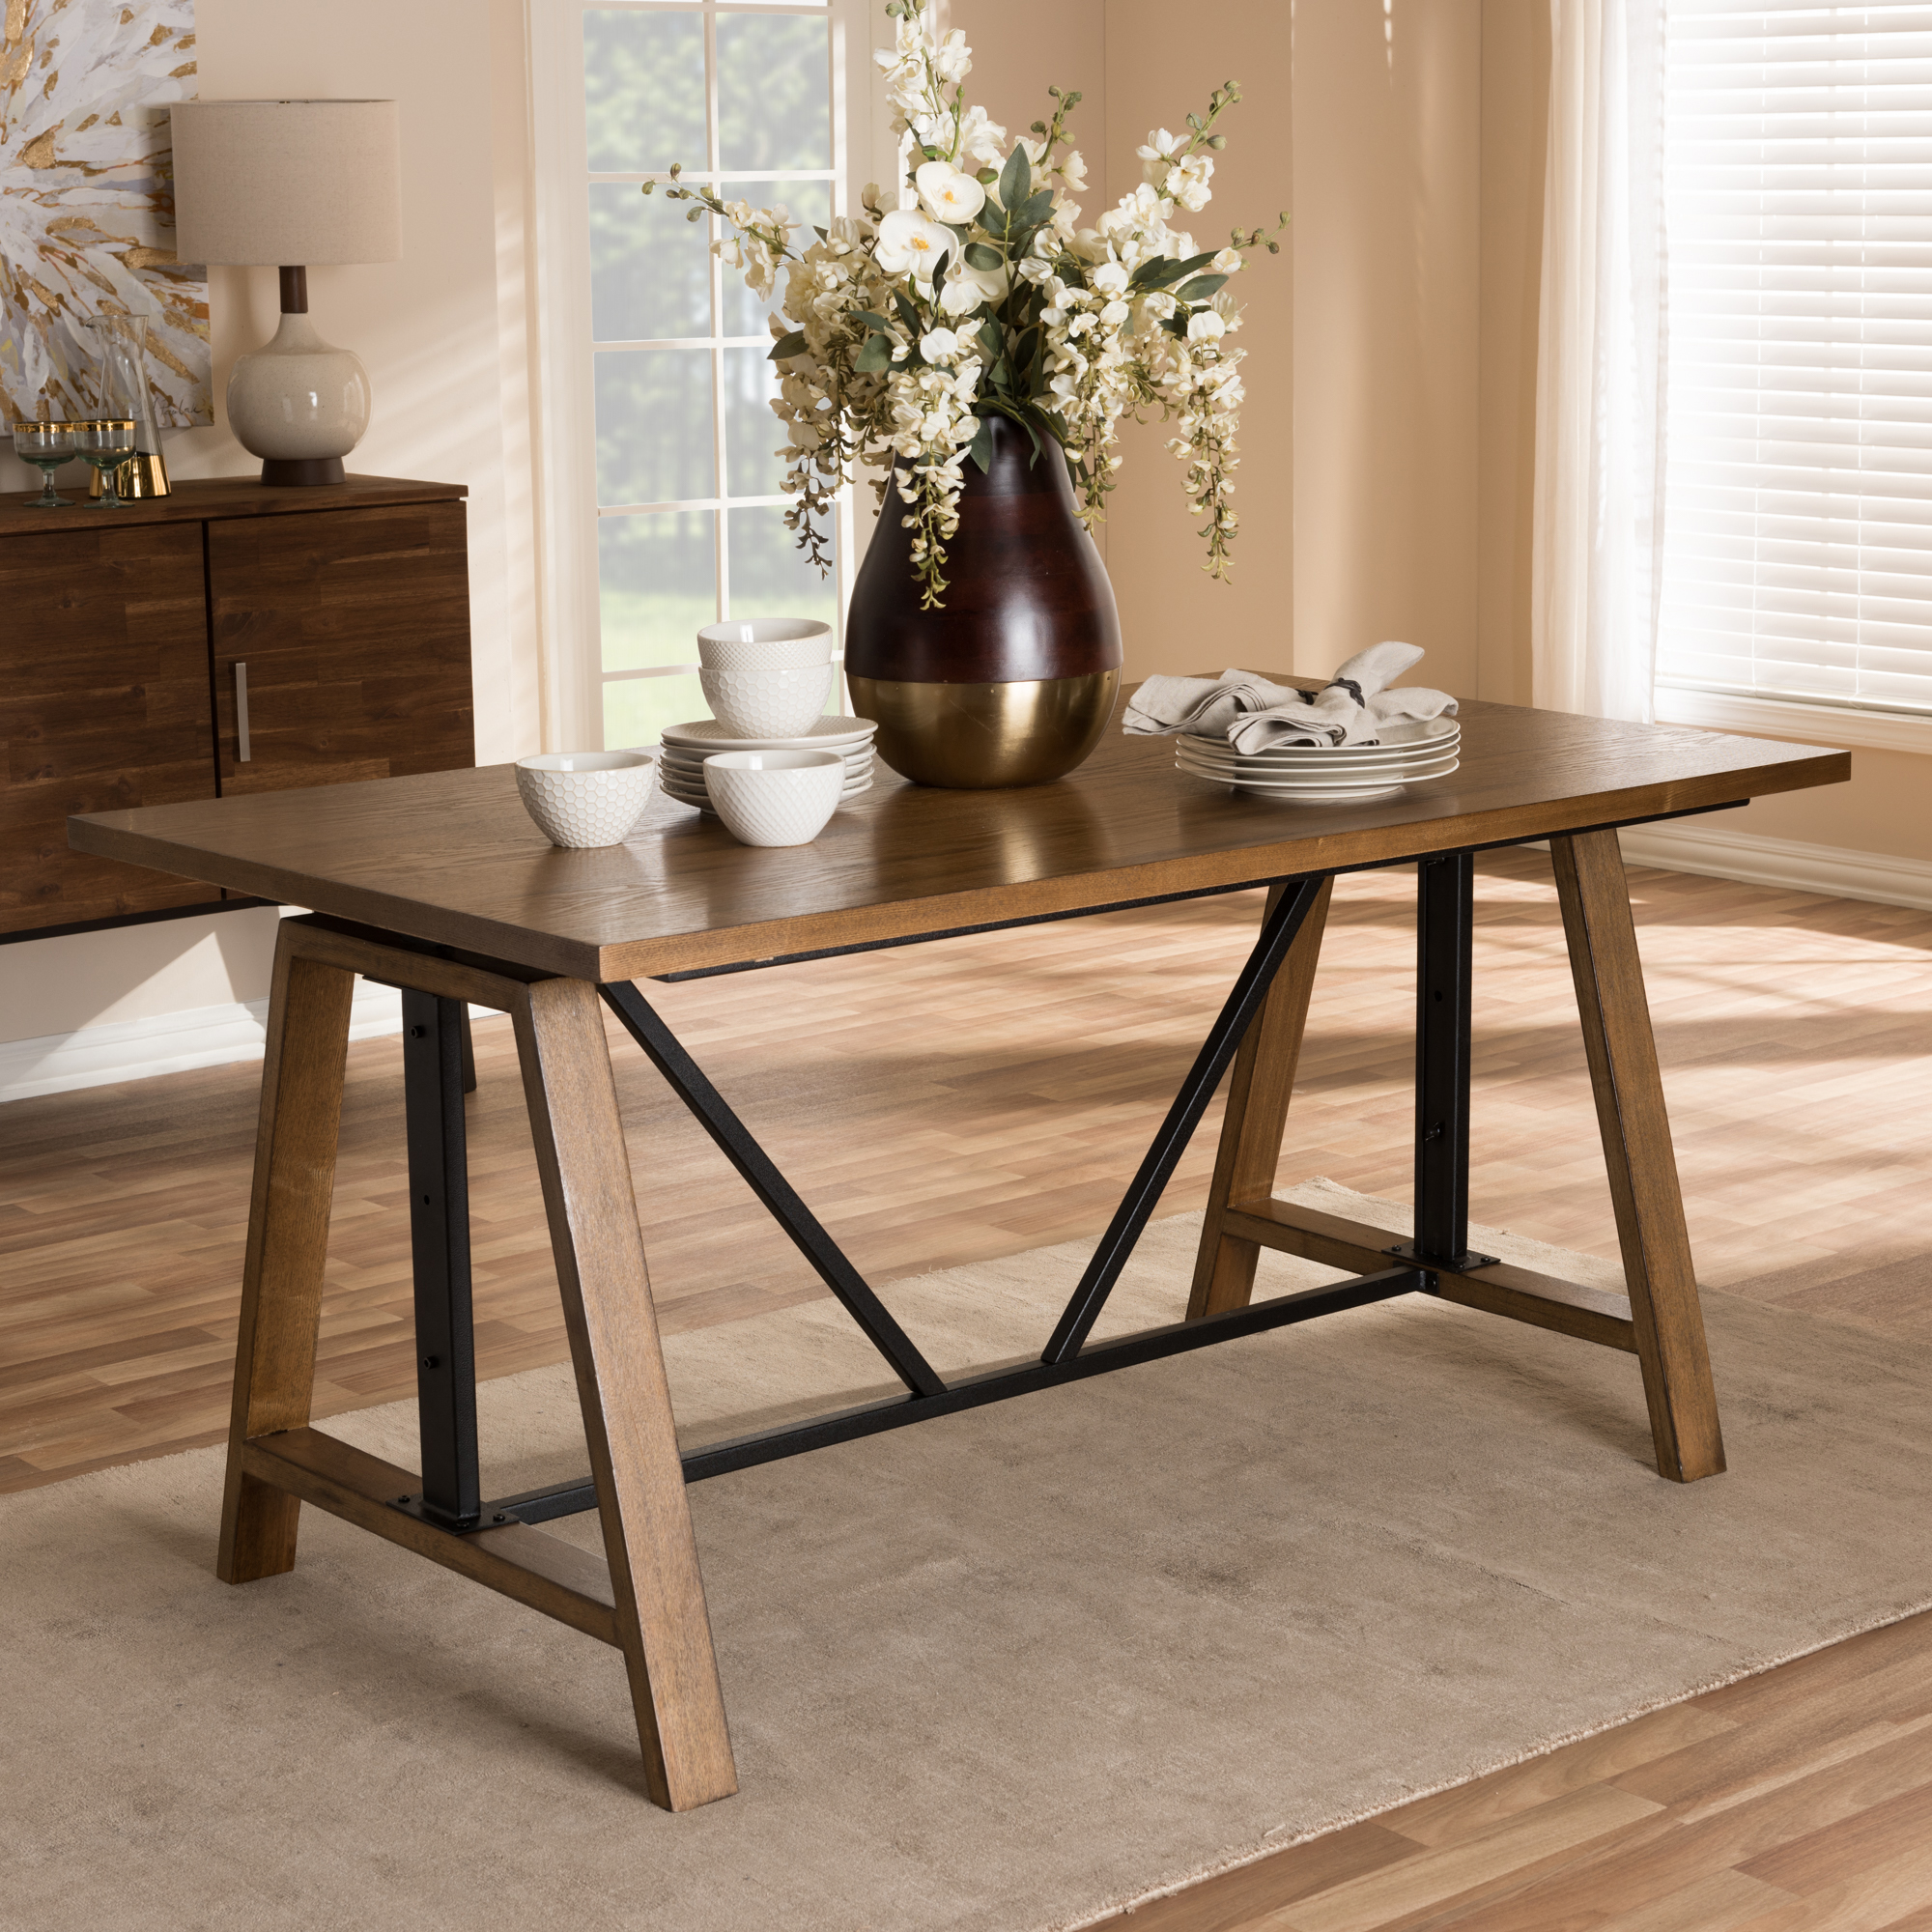 ... Baxton Studio Nico Rustic Industrial Metal And Distressed Wood  Adjustable Height Work Table   IEYLX  ...